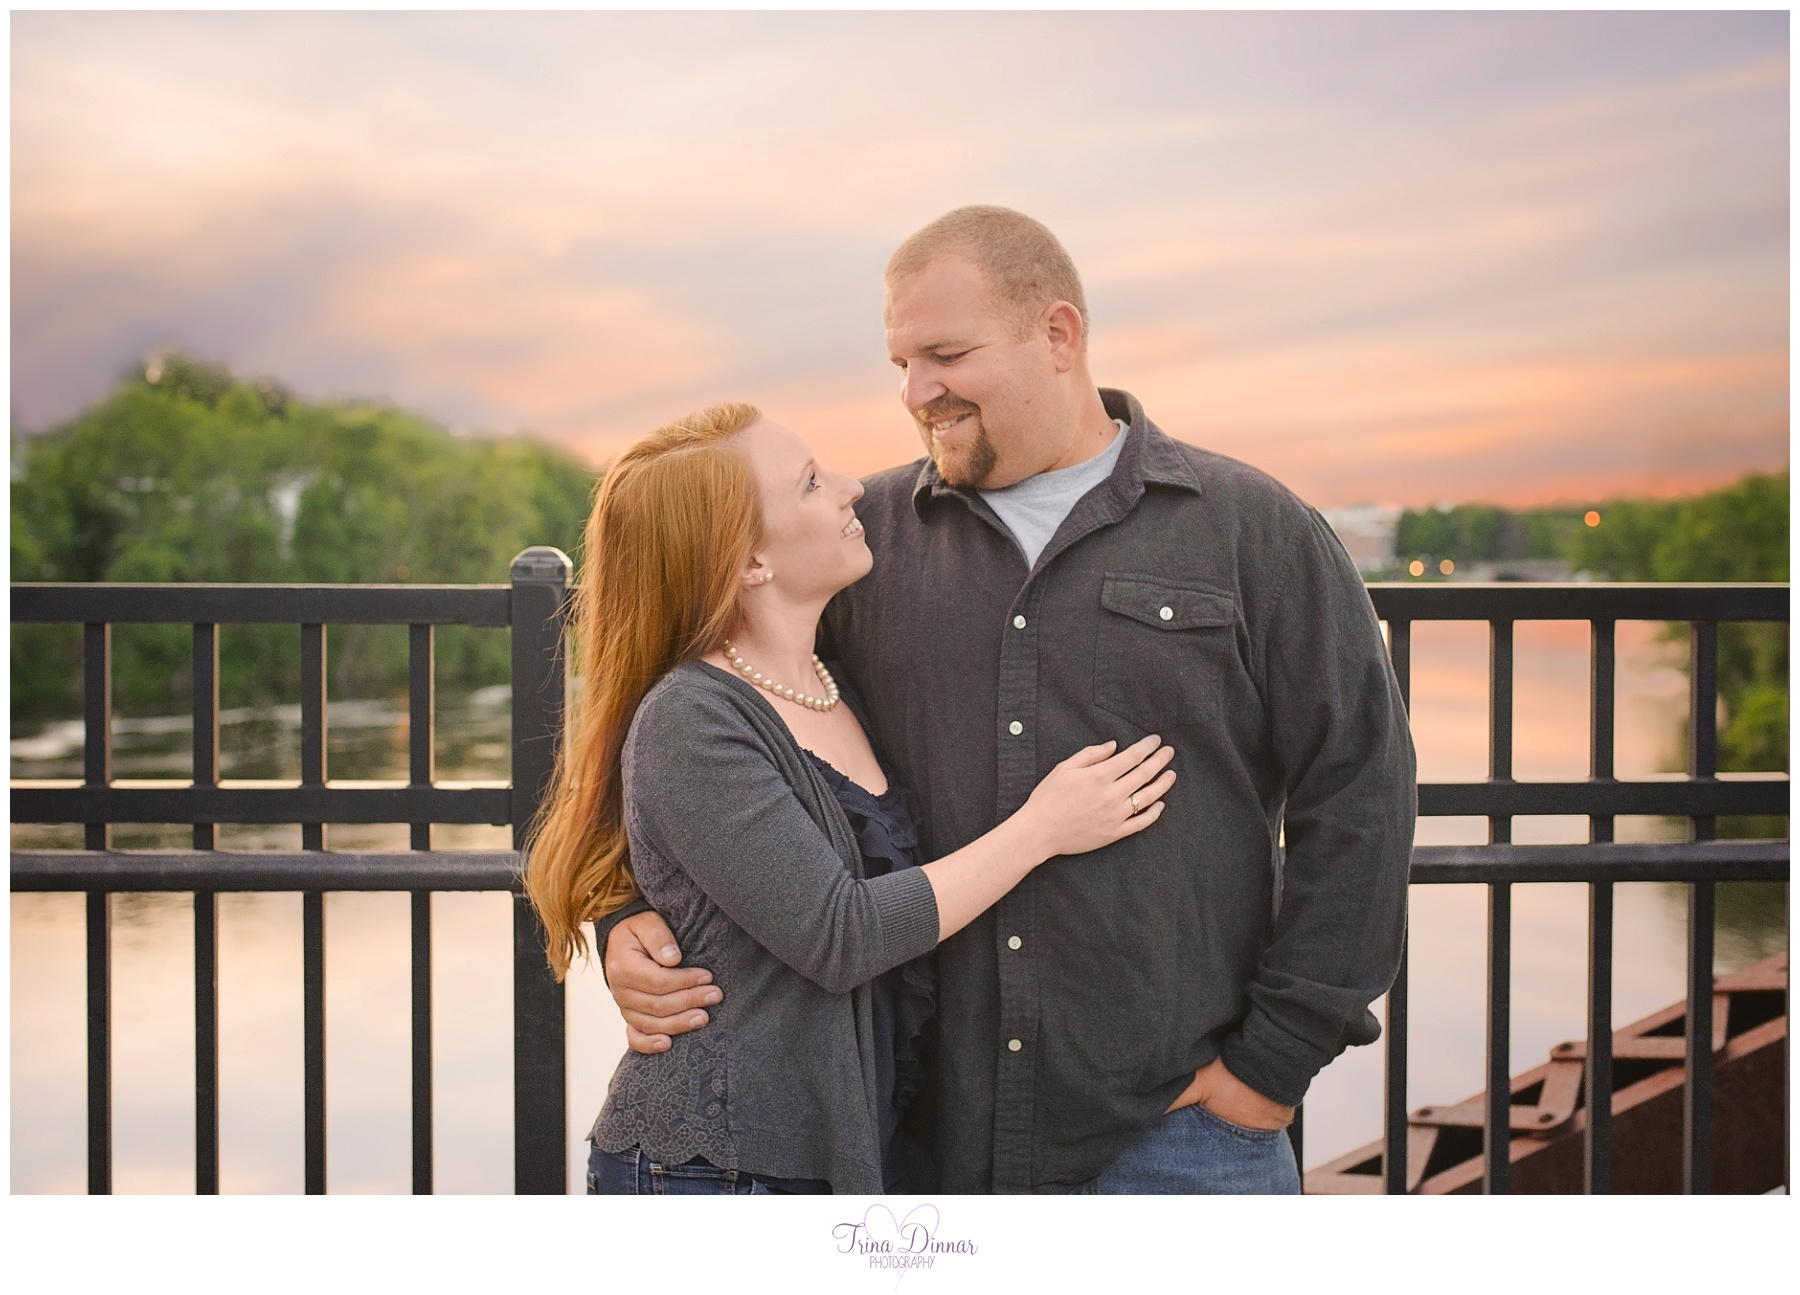 Engagement photographer in Maine